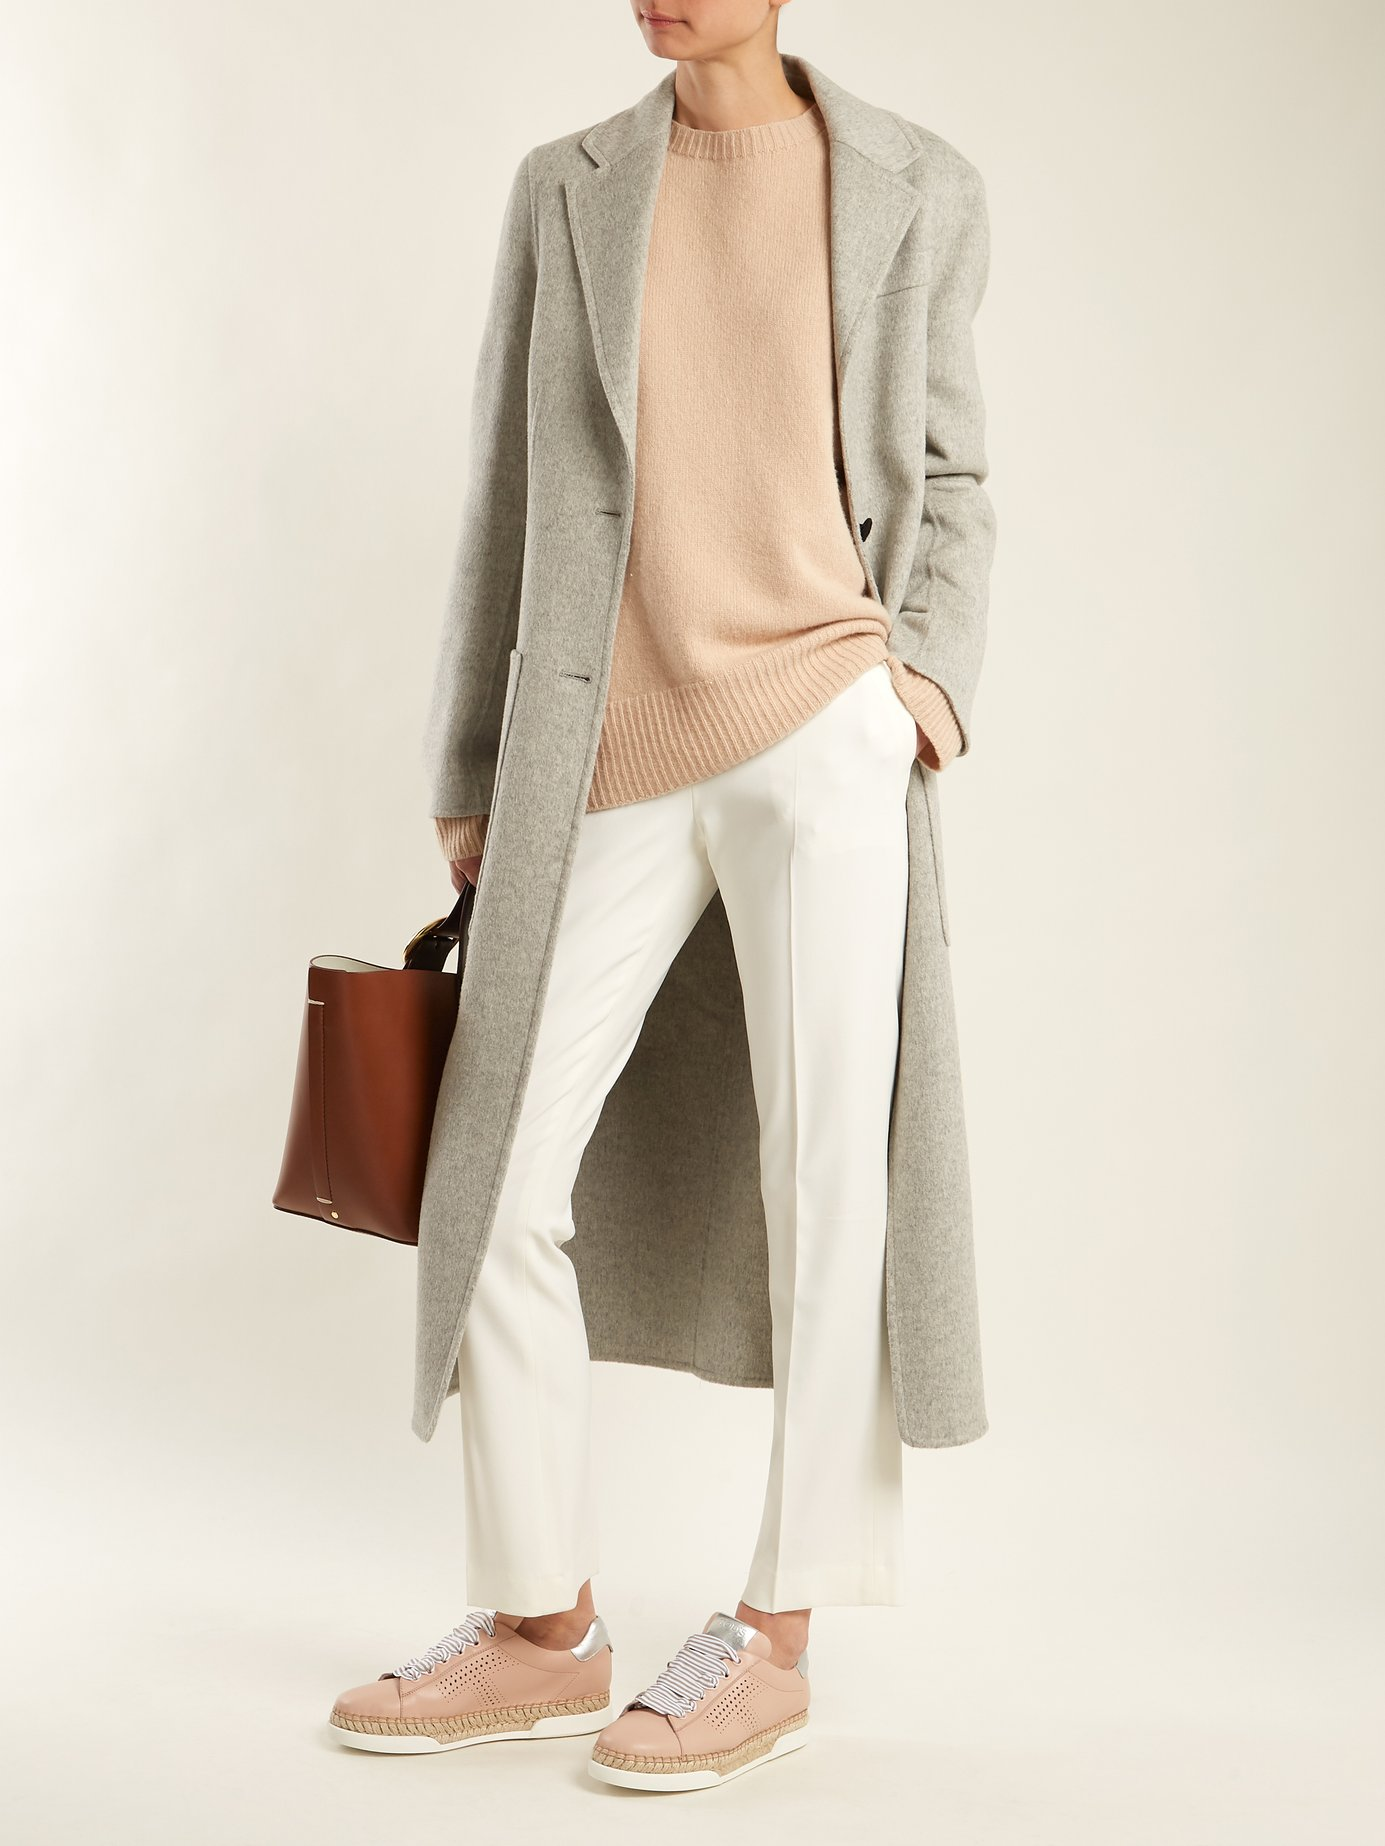 outfit_1195020_1